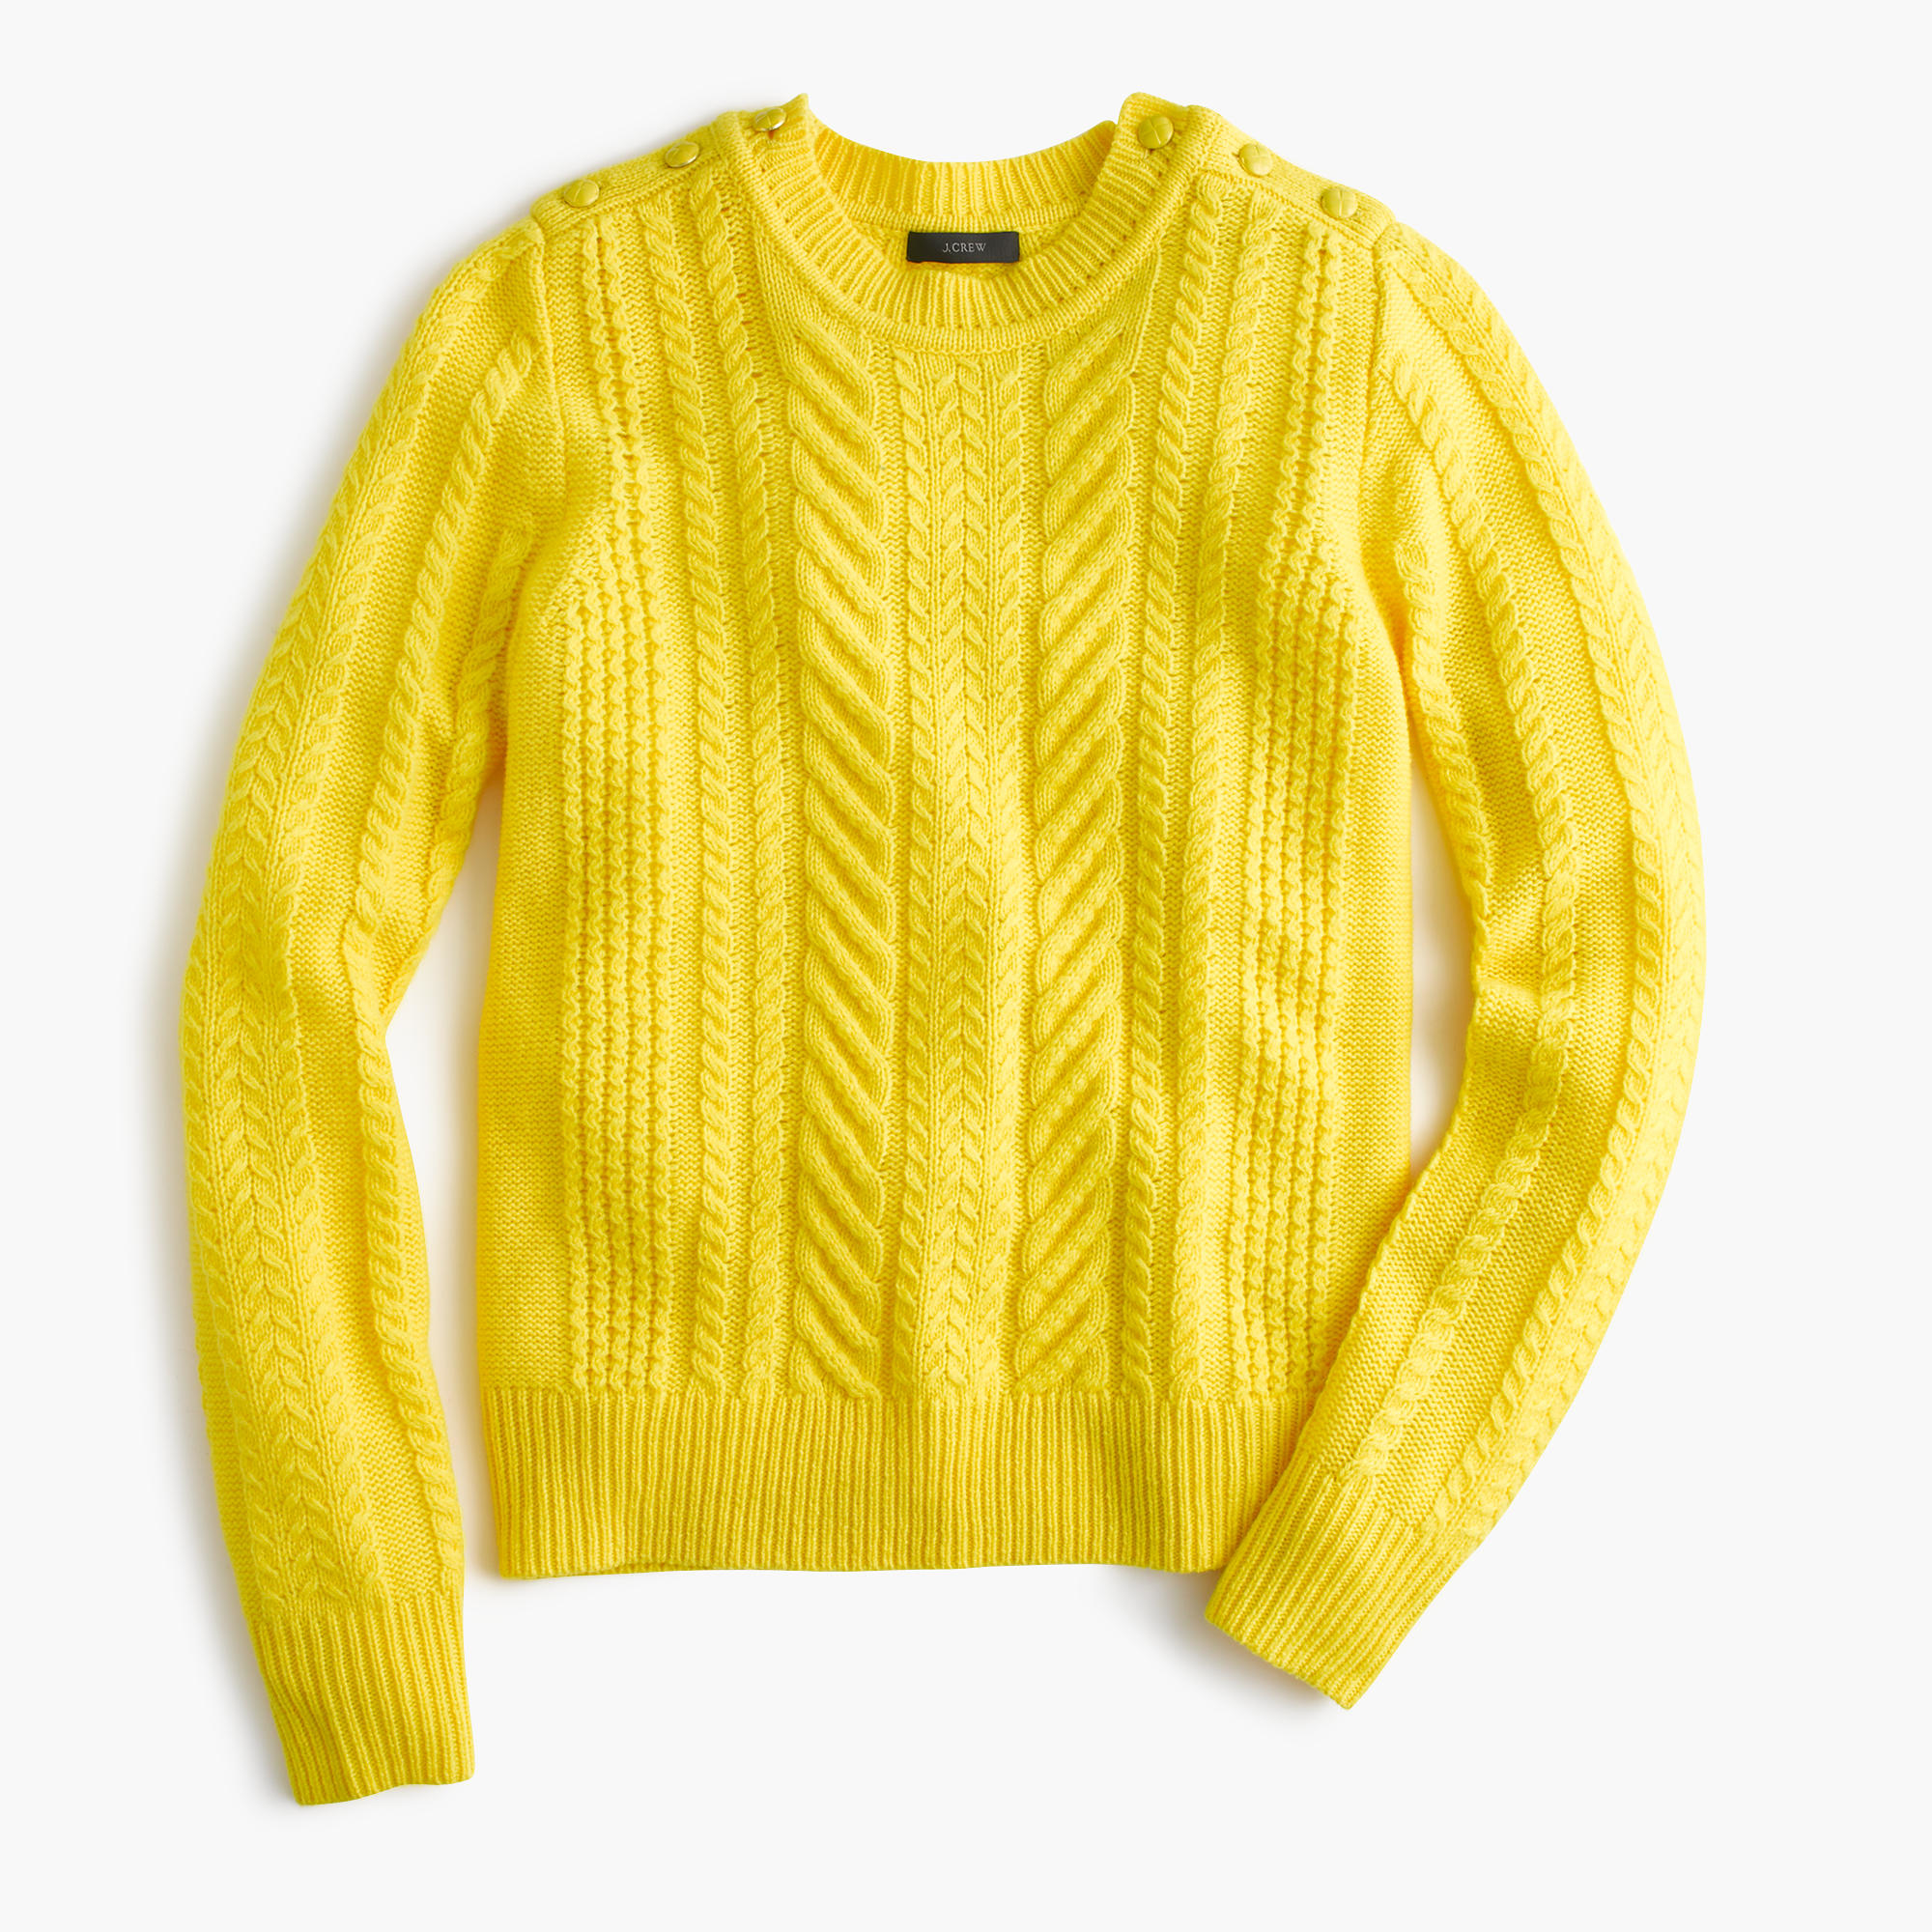 J.crew Petite Perfect Cable Sweater in Yellow | Lyst